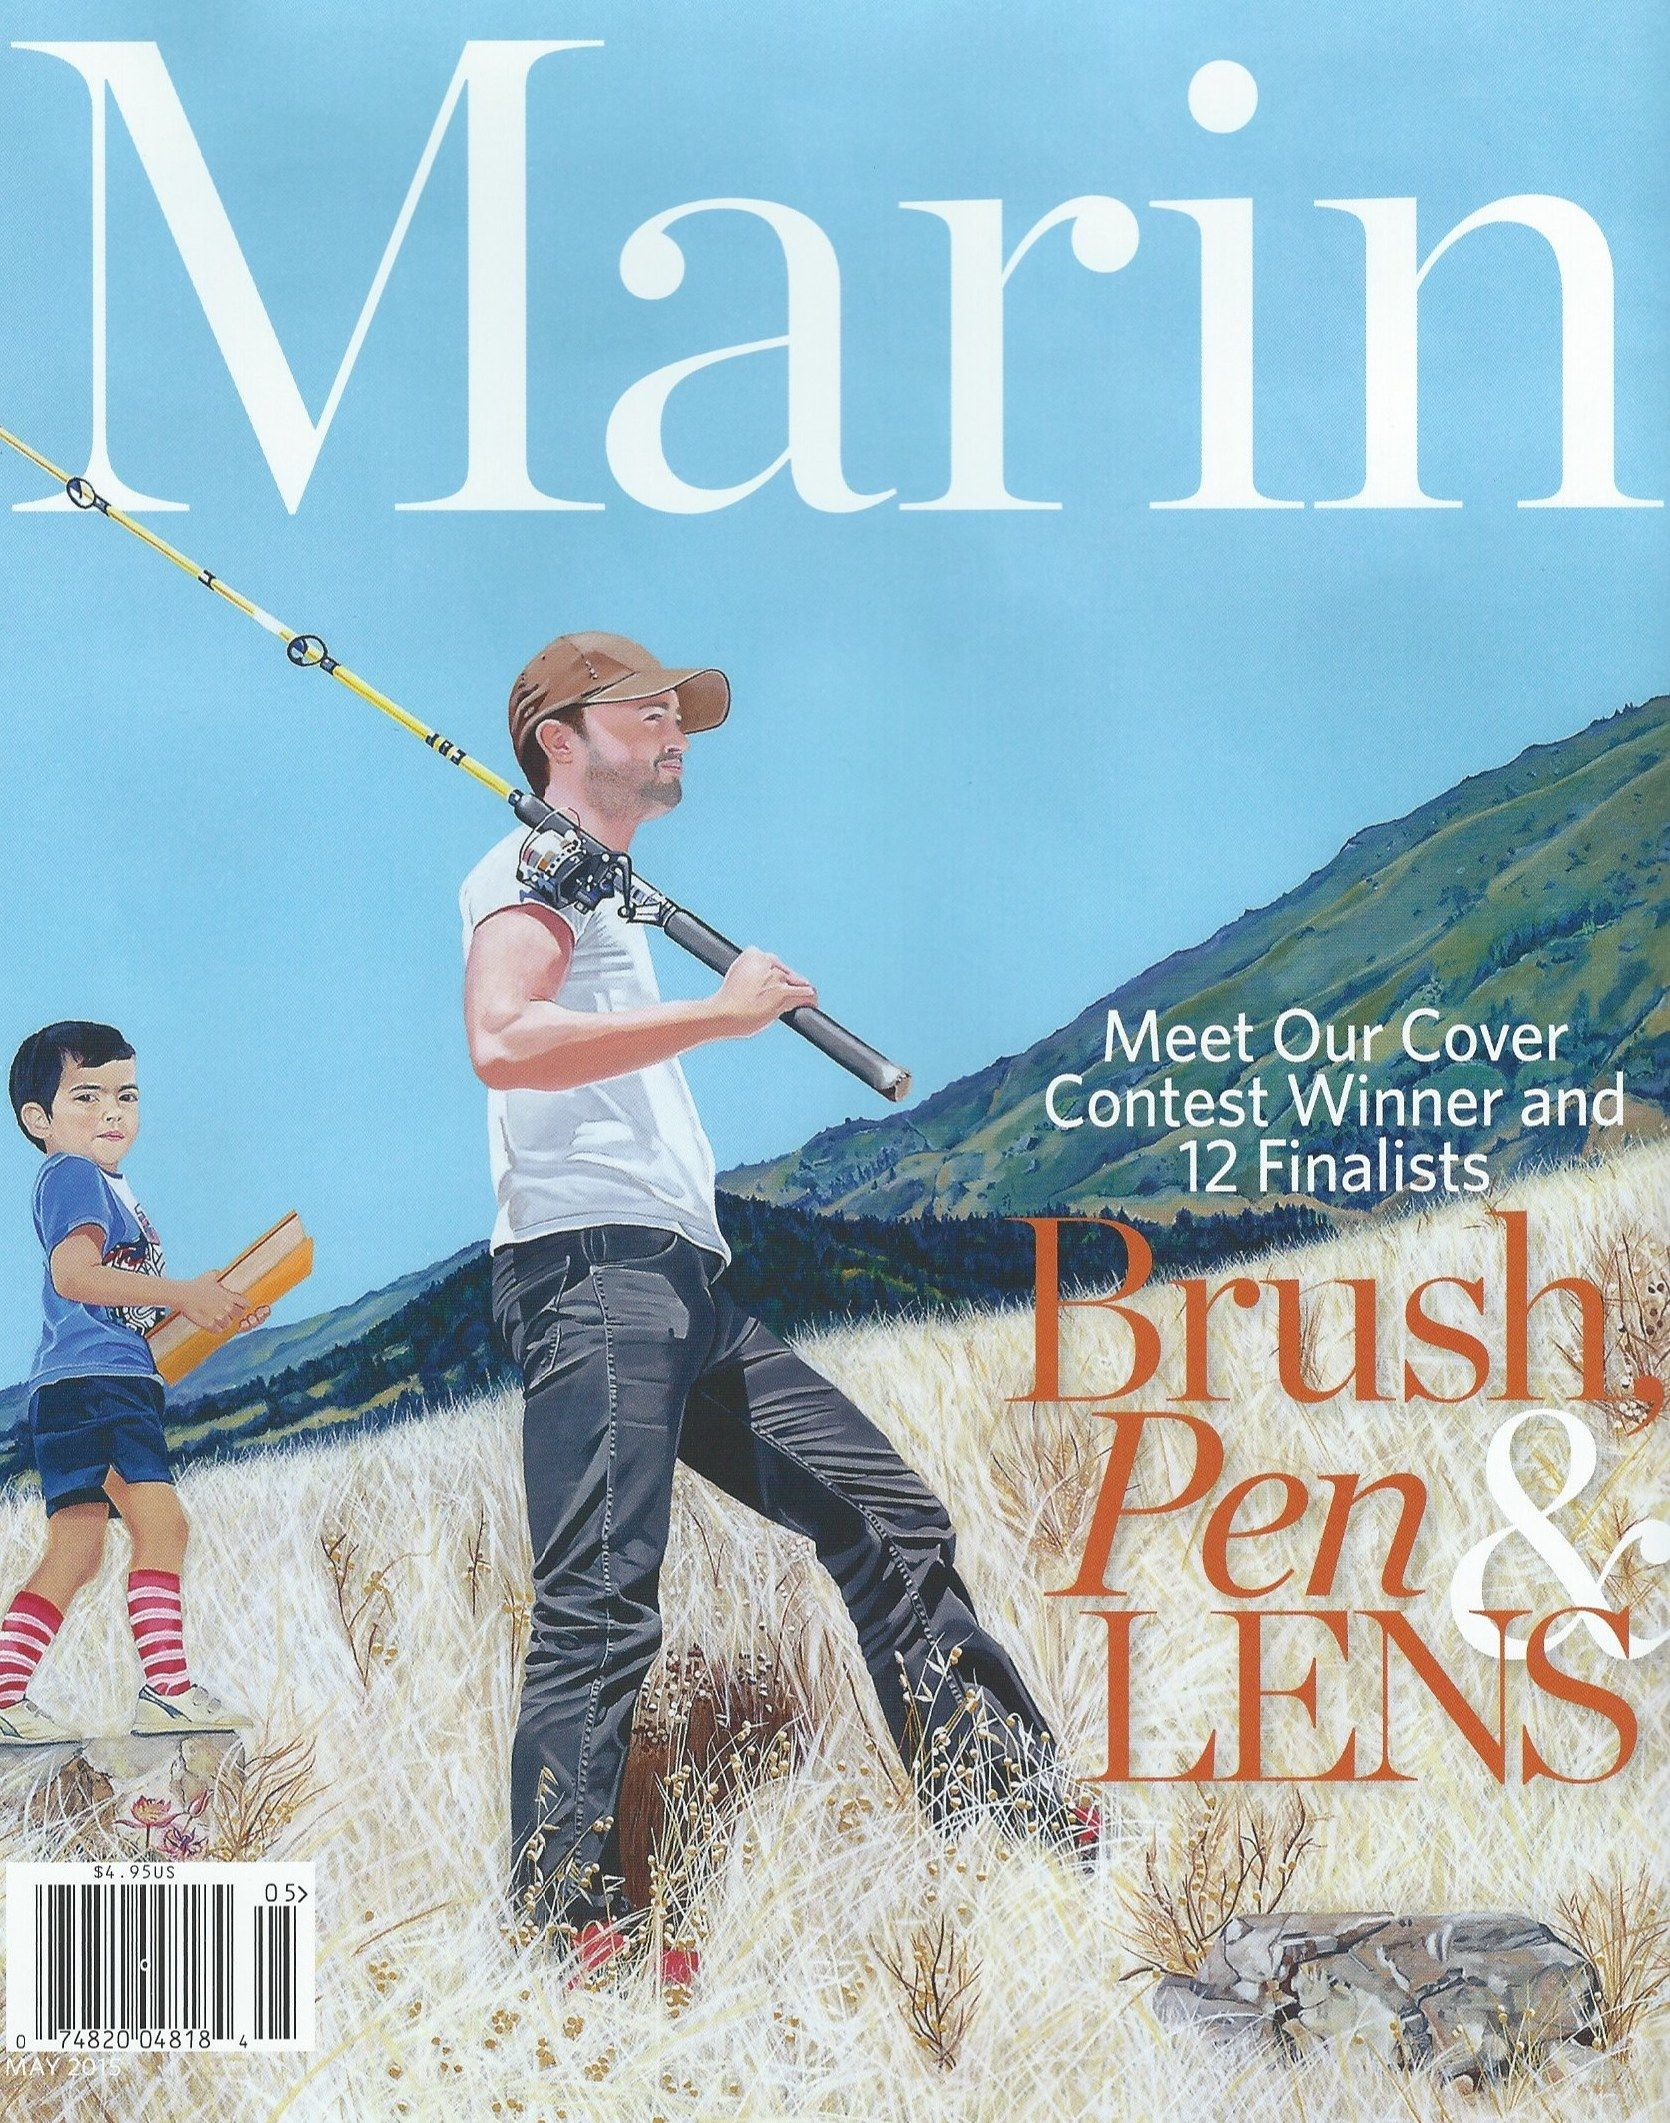 Father and Son Marin Magazine Cover, Ingrid C. Lockowandt